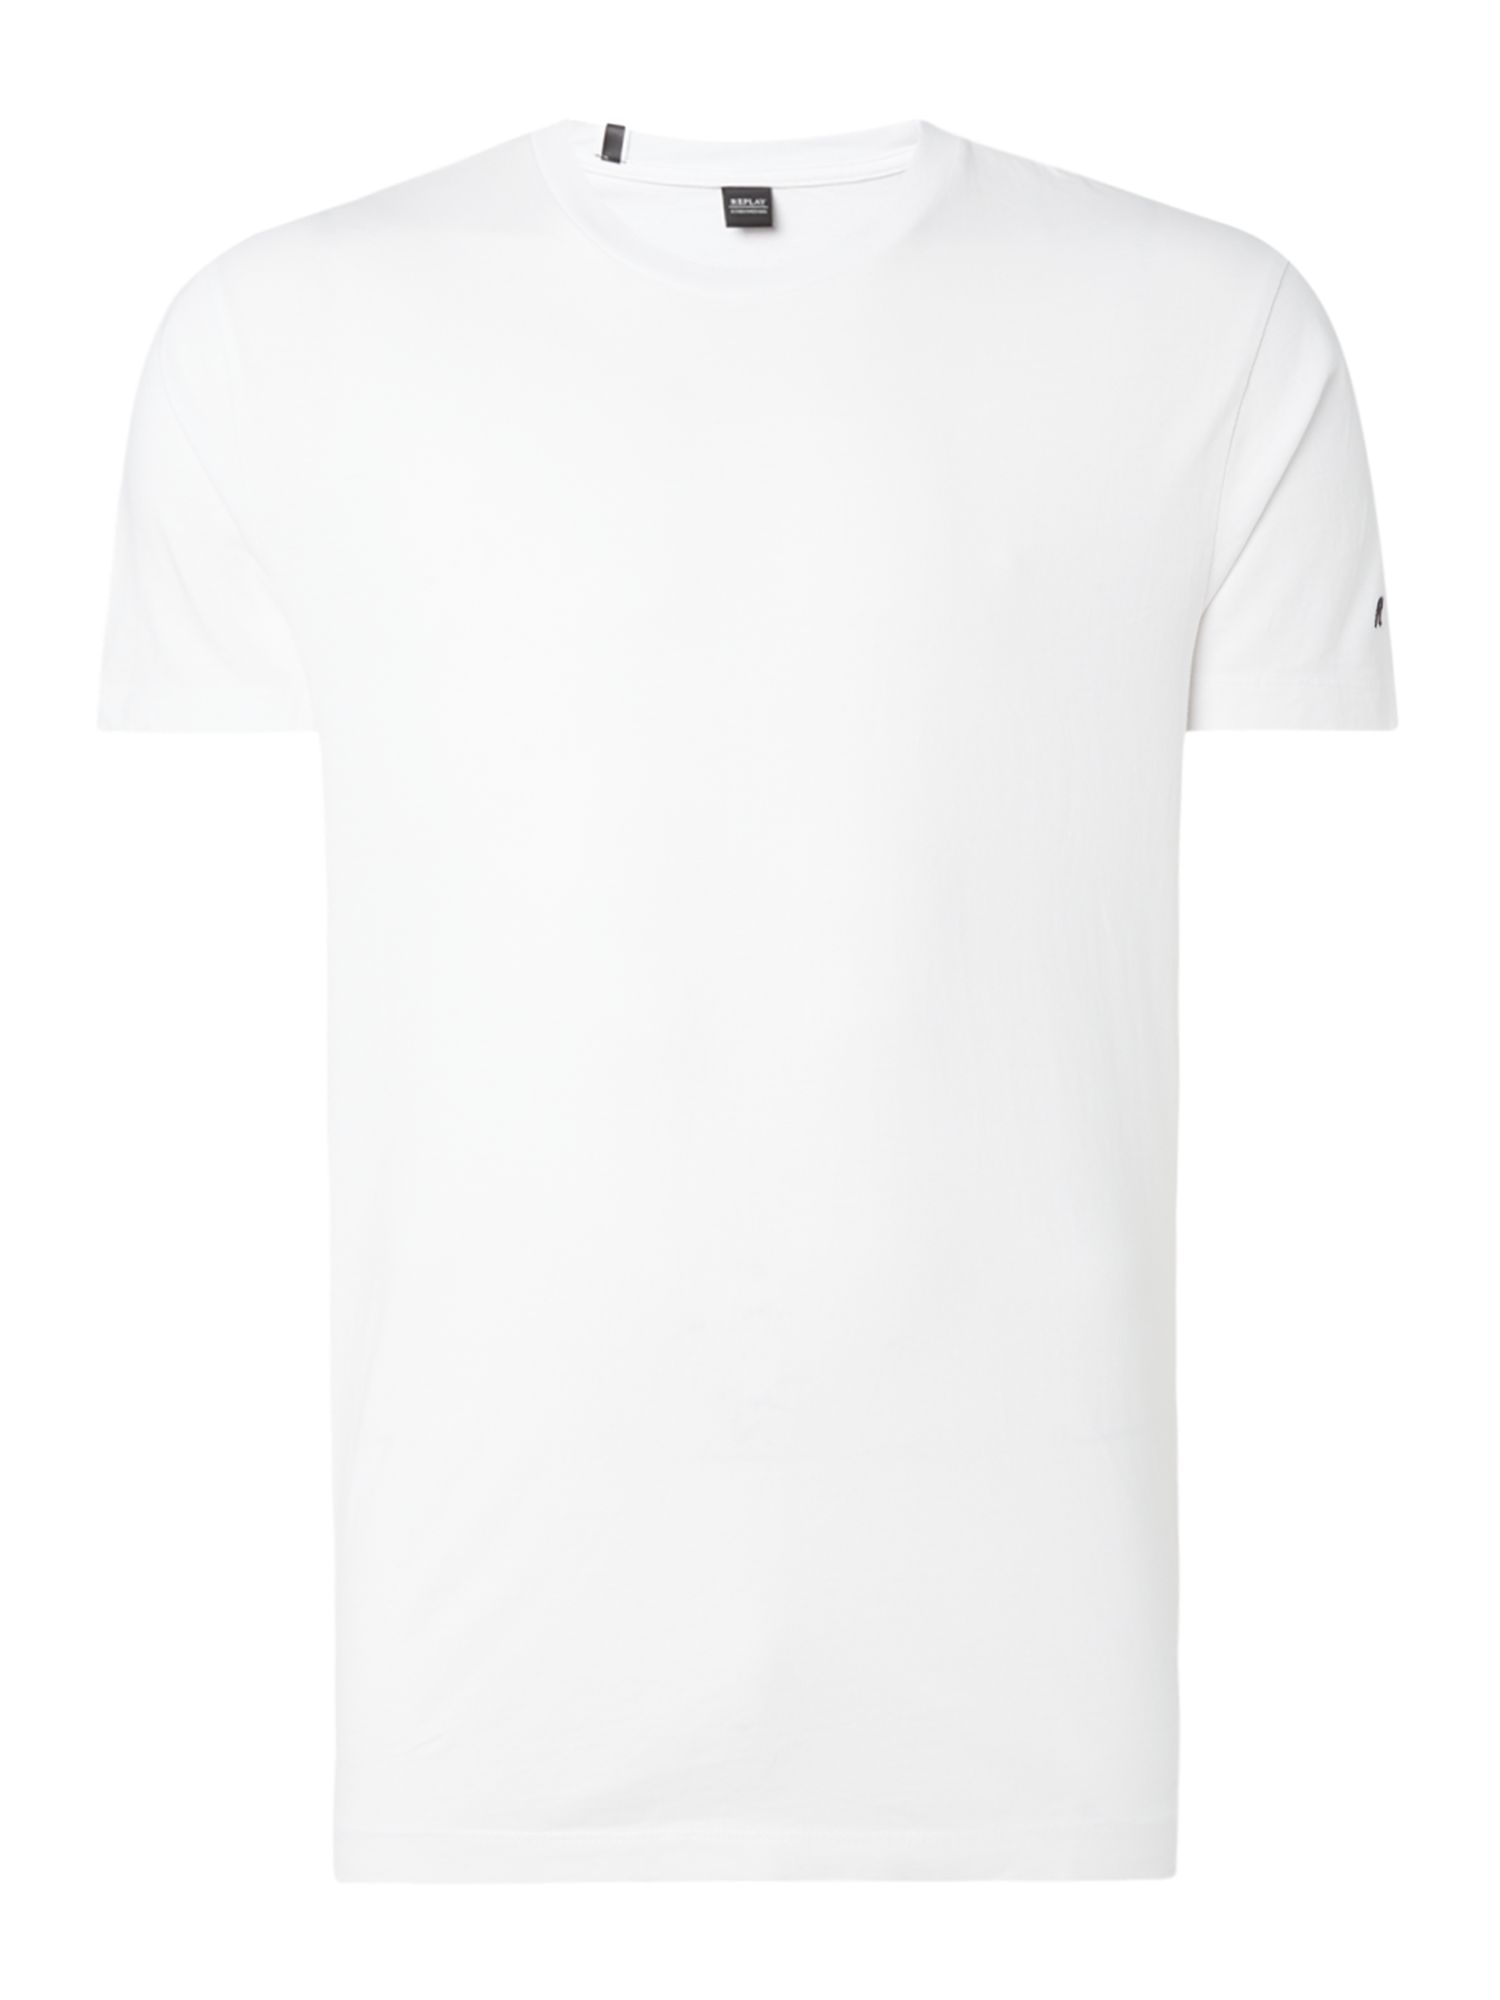 Men's Replay Jersey T-shirt, White